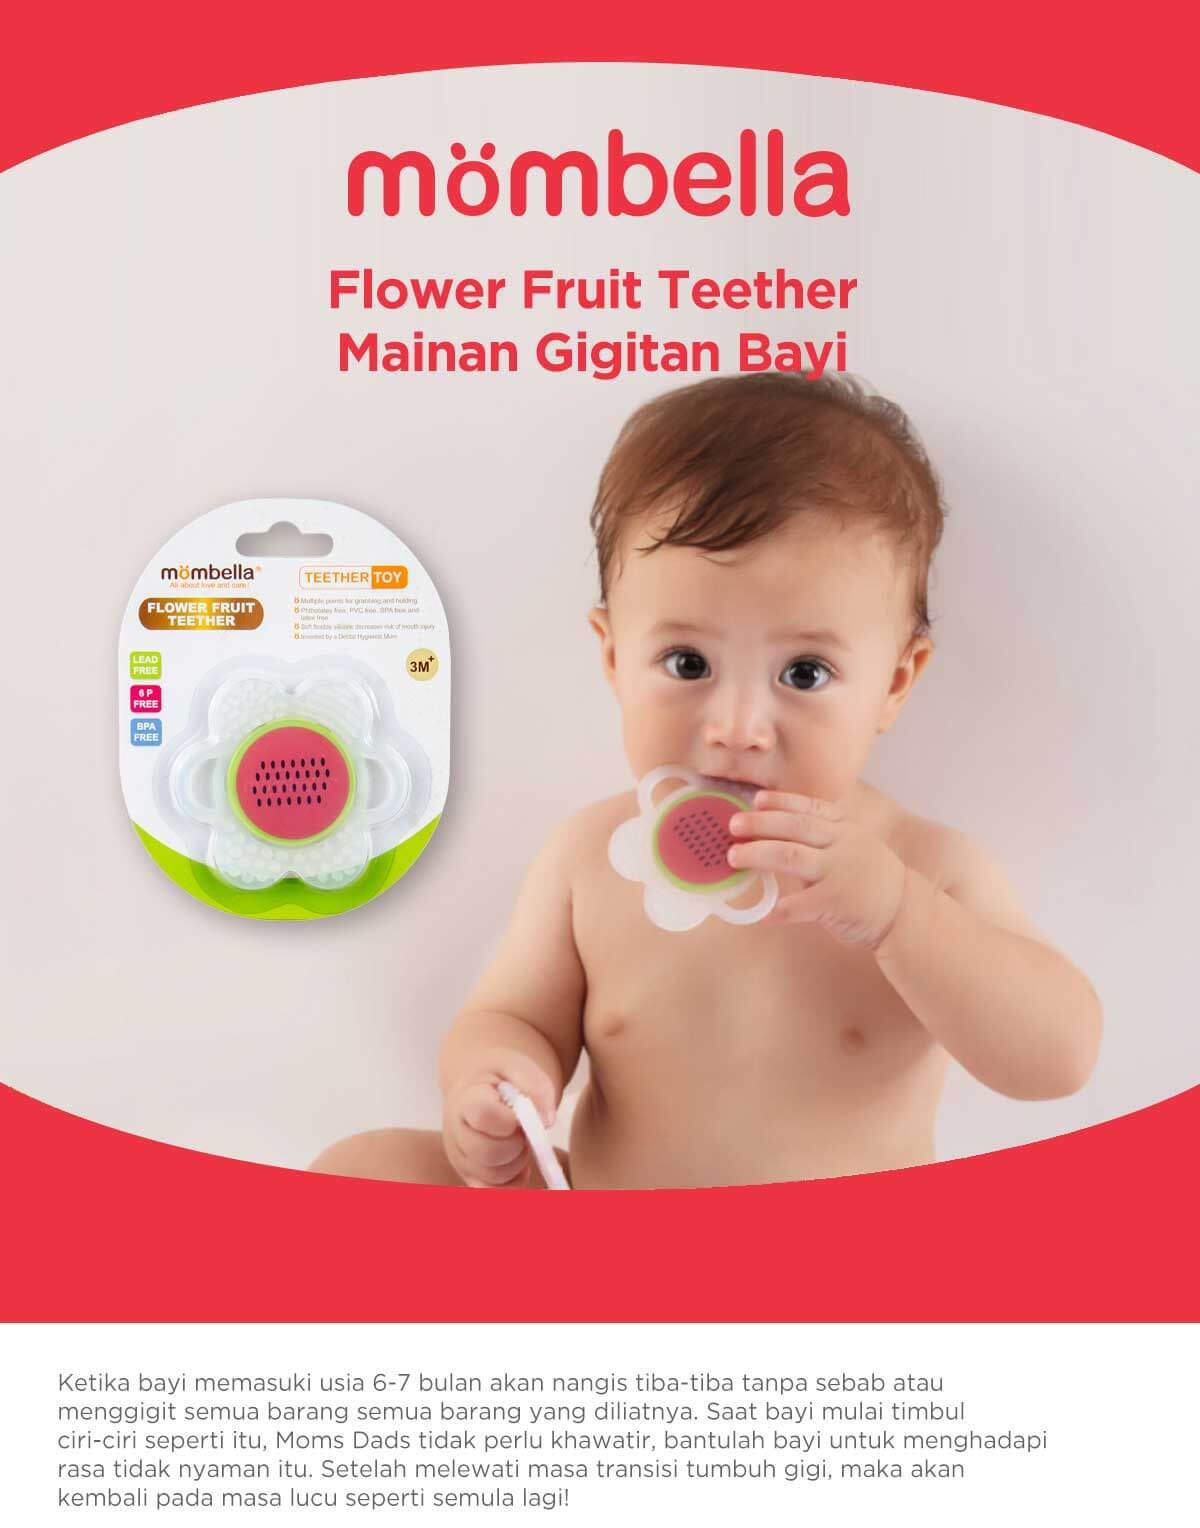 Mombella Flower Fruit Teethe